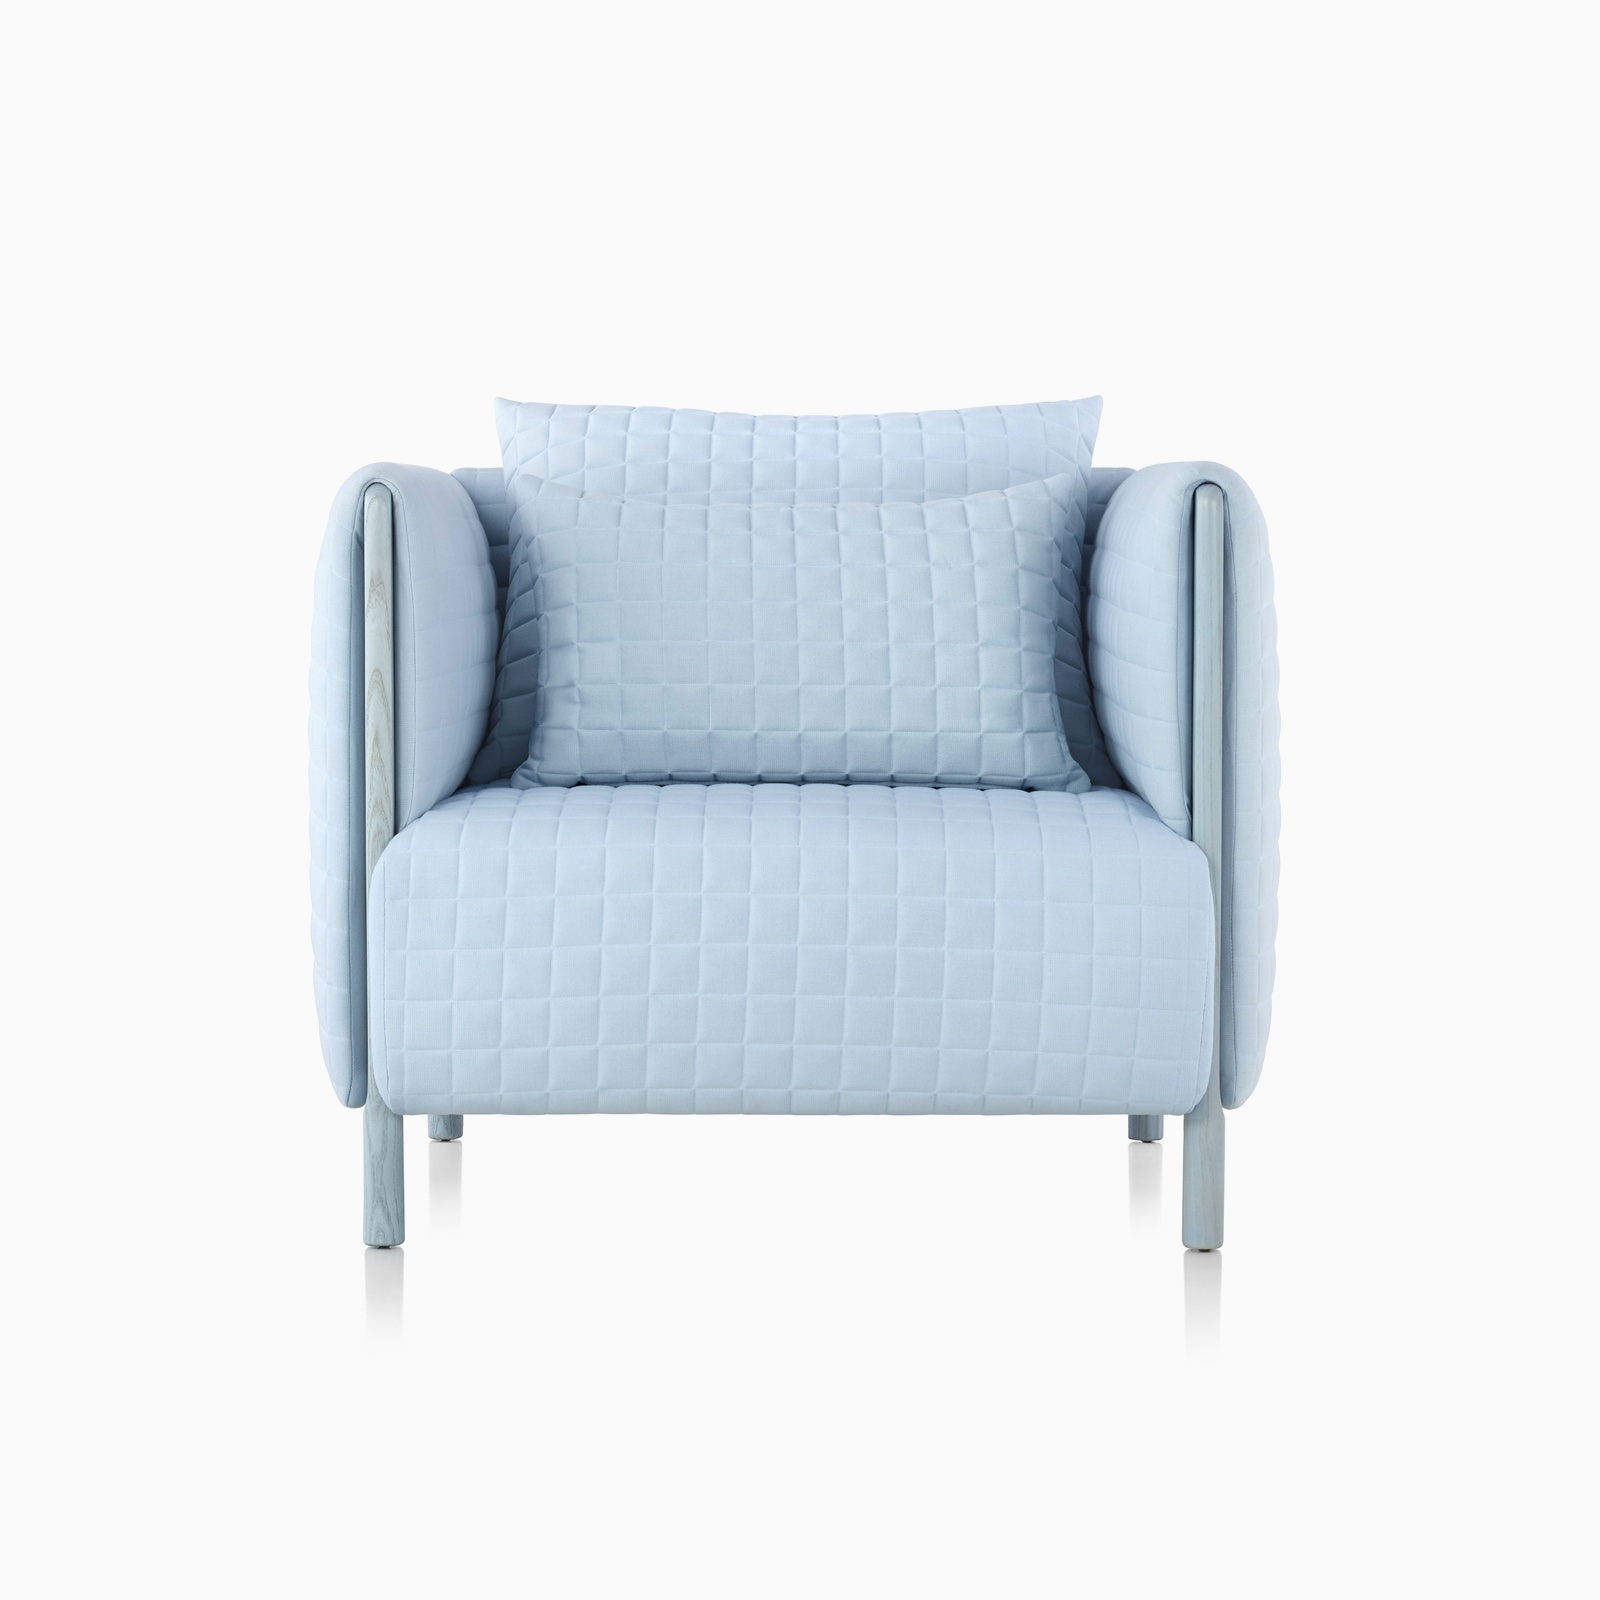 A light blue ColourForm lounge chair, viewed from the front.